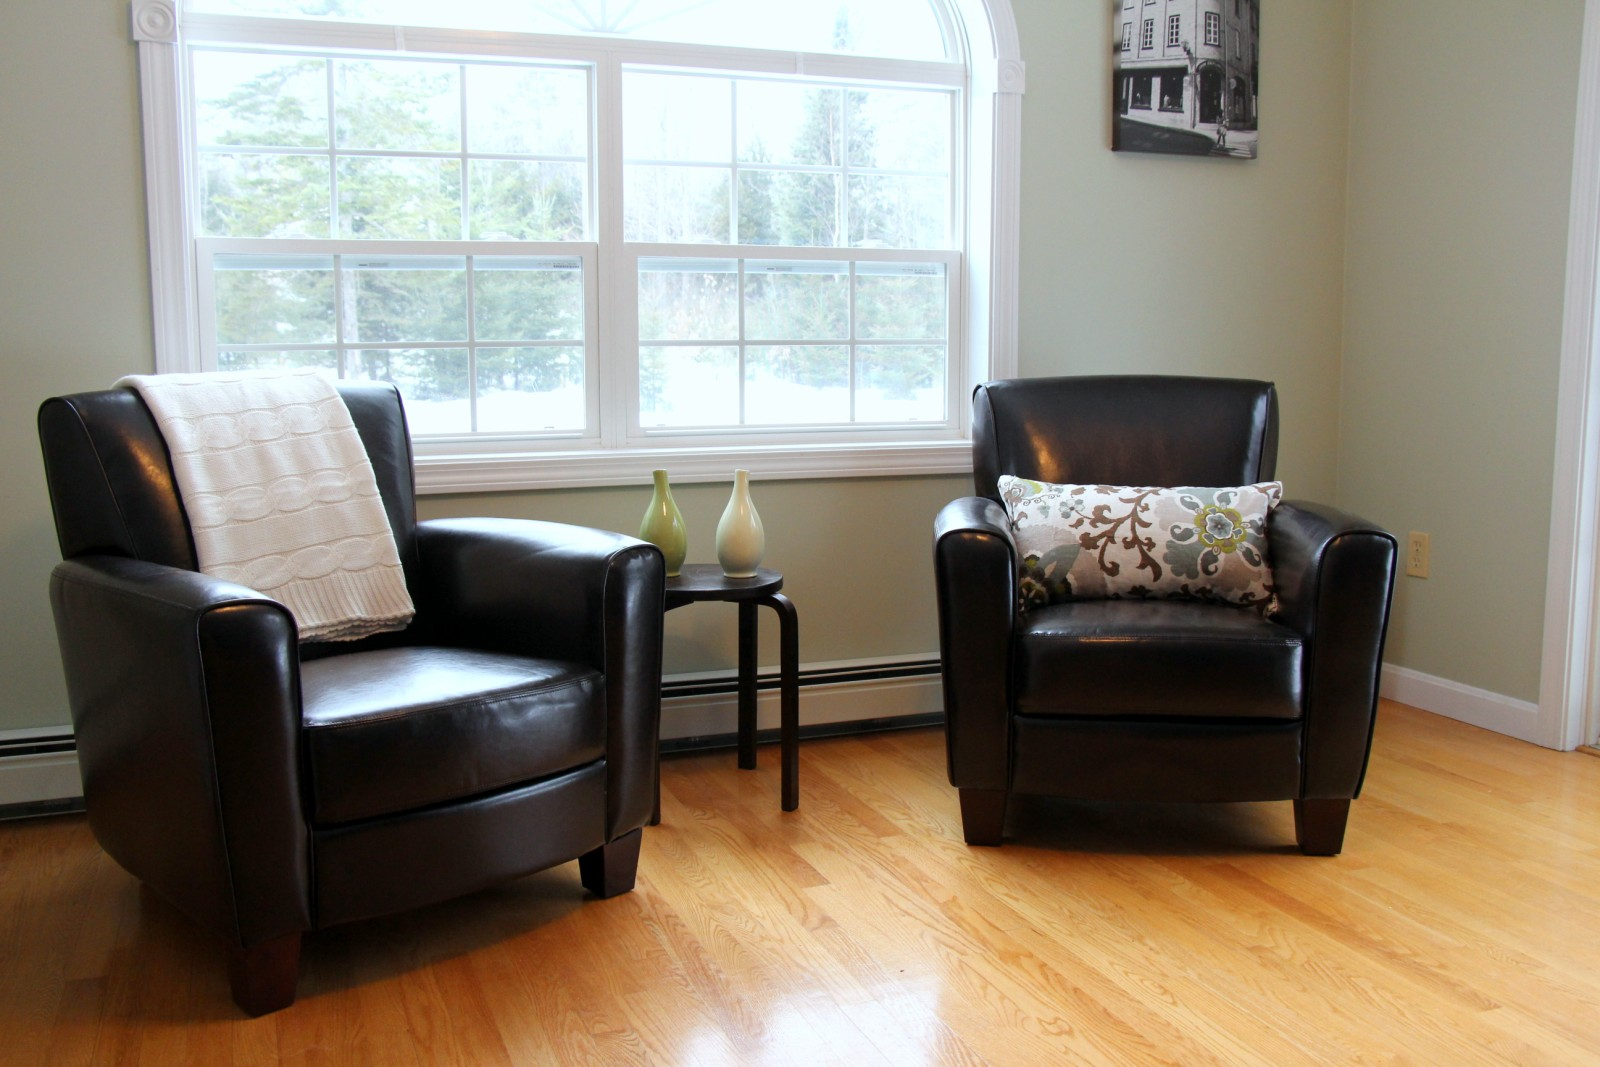 Target Club Chair Gold Covers On Sale Heart Maine Home New Chairs For The Front Room